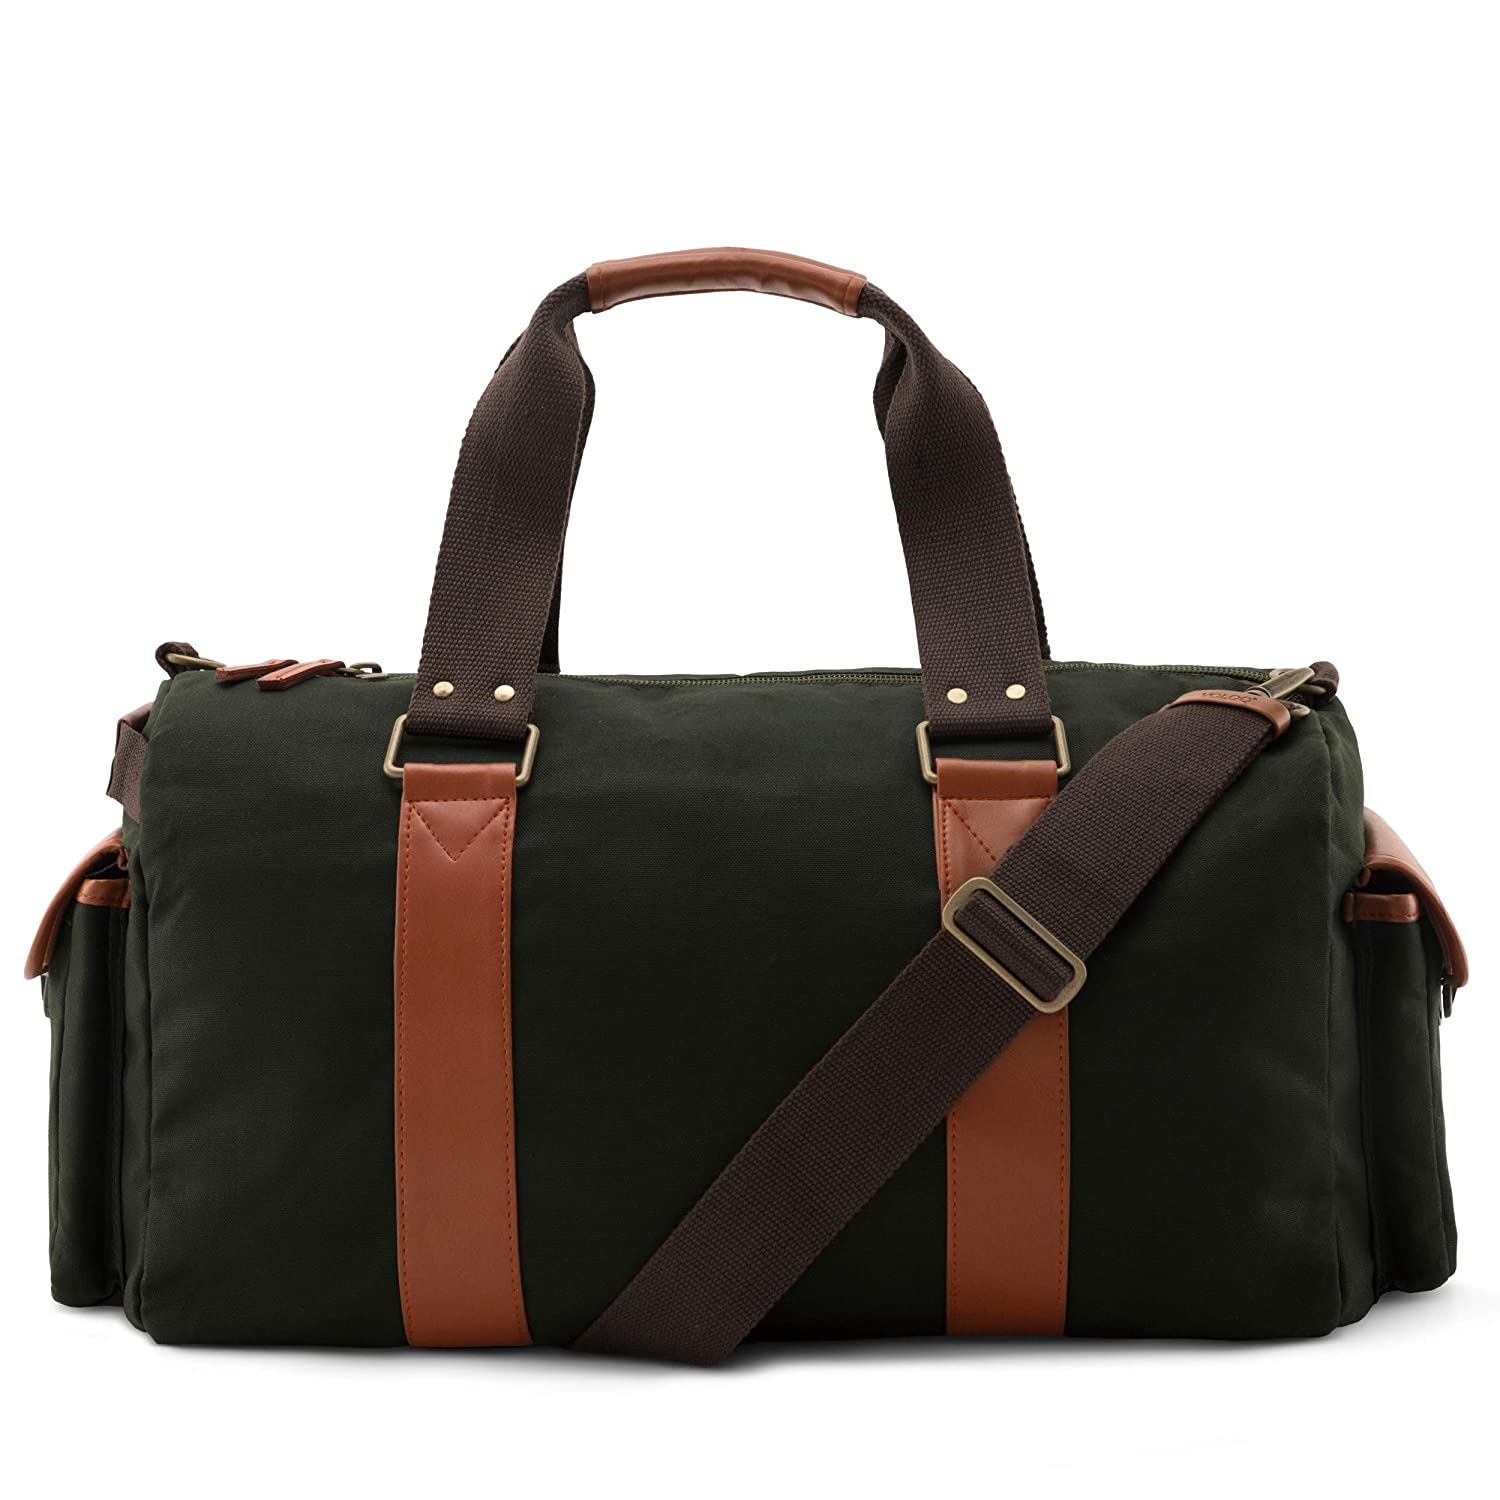 VOLOQ Karac Travel Bag Duffle for Men   Women 6b70d754ee619